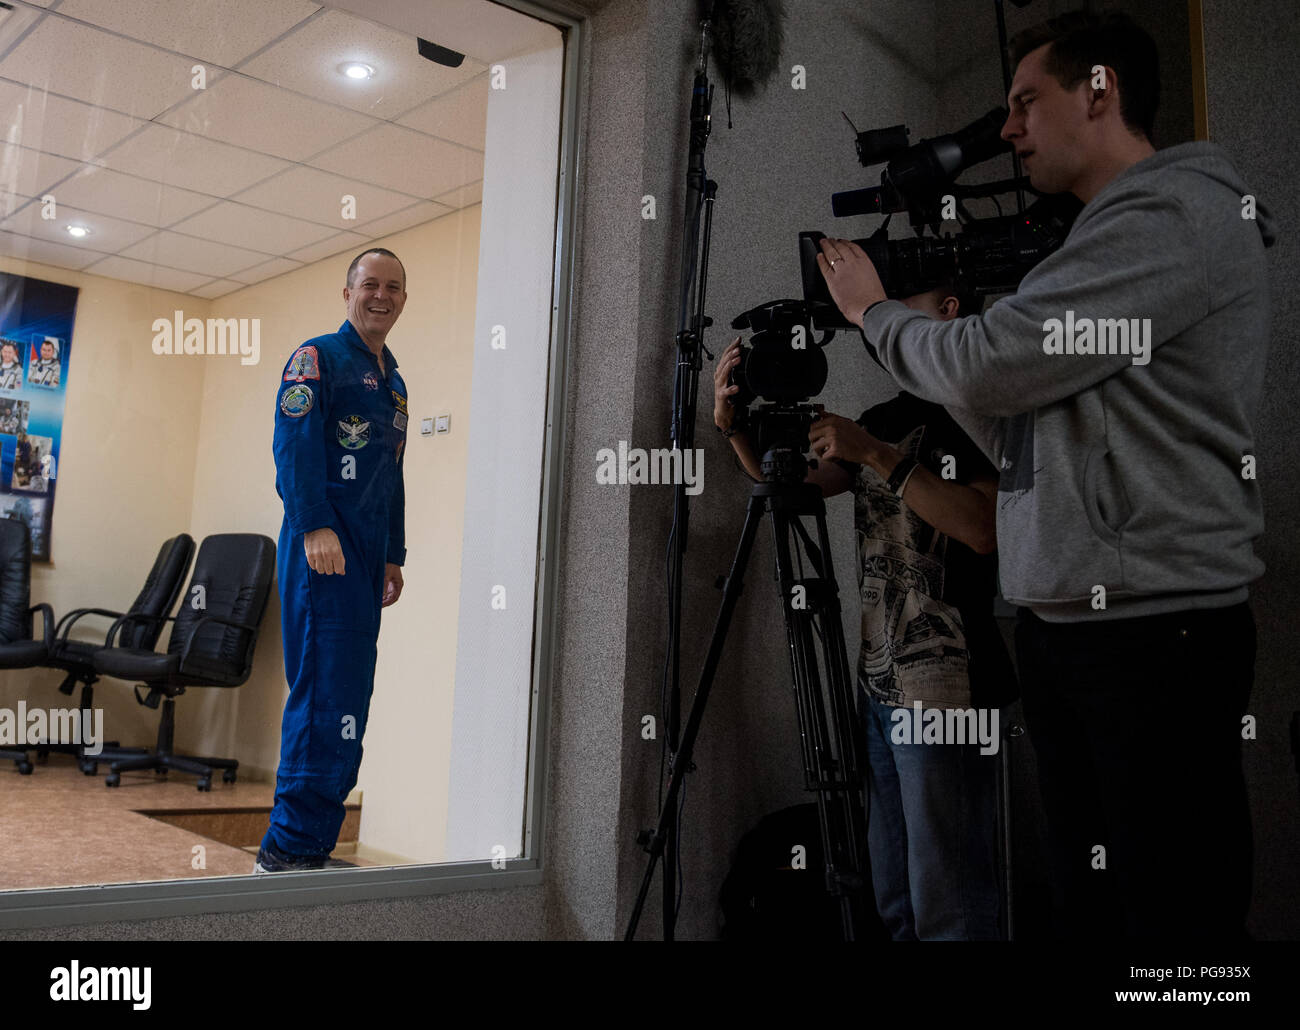 Expedition 55 flight engineer Ricky Arnold of NASA is seen at the conclusion of a press conference, Tuesday, March 20, 2018 at the Cosmonaut Hotel in Baikonur, Kazakhstan. Arnold, Soyuz Commander Oleg Artemyev of Roscosmos, and flight engineer Drew Feustel of NASA are scheduled to launch to the International Space Station aboard the Soyuz MS-08 spacecraft on Wednesday, March, 21. - Stock Image